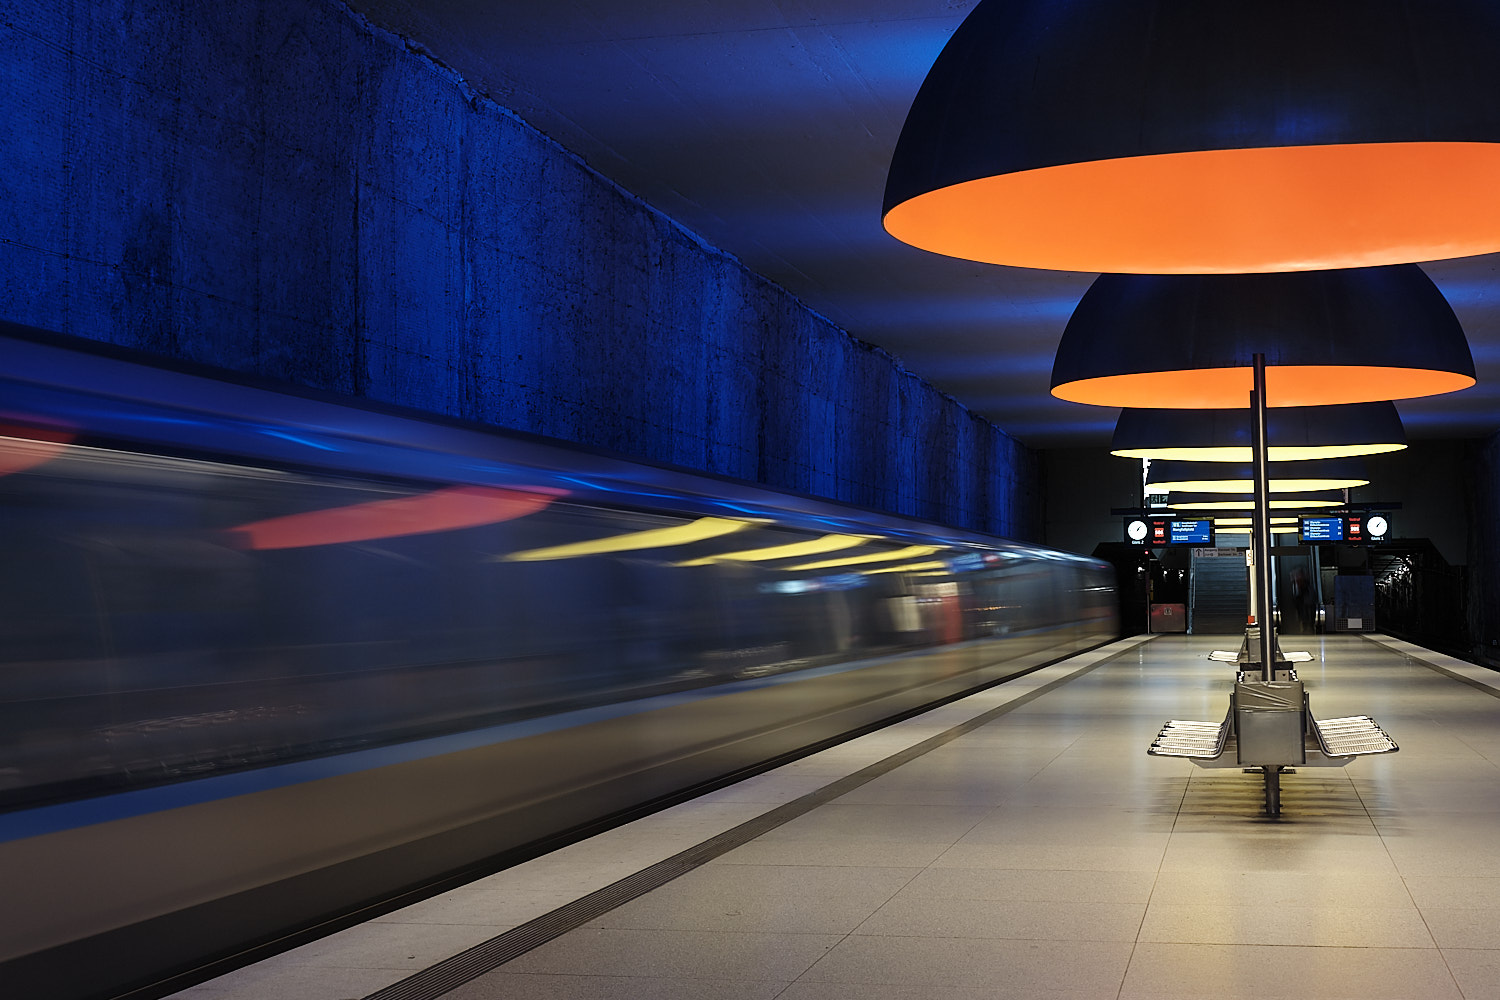 Westfriedhof long exposition U-Bahn departing station and platform is empty. Orange and yellow ceiling hanging lamps from Ingo Maurer